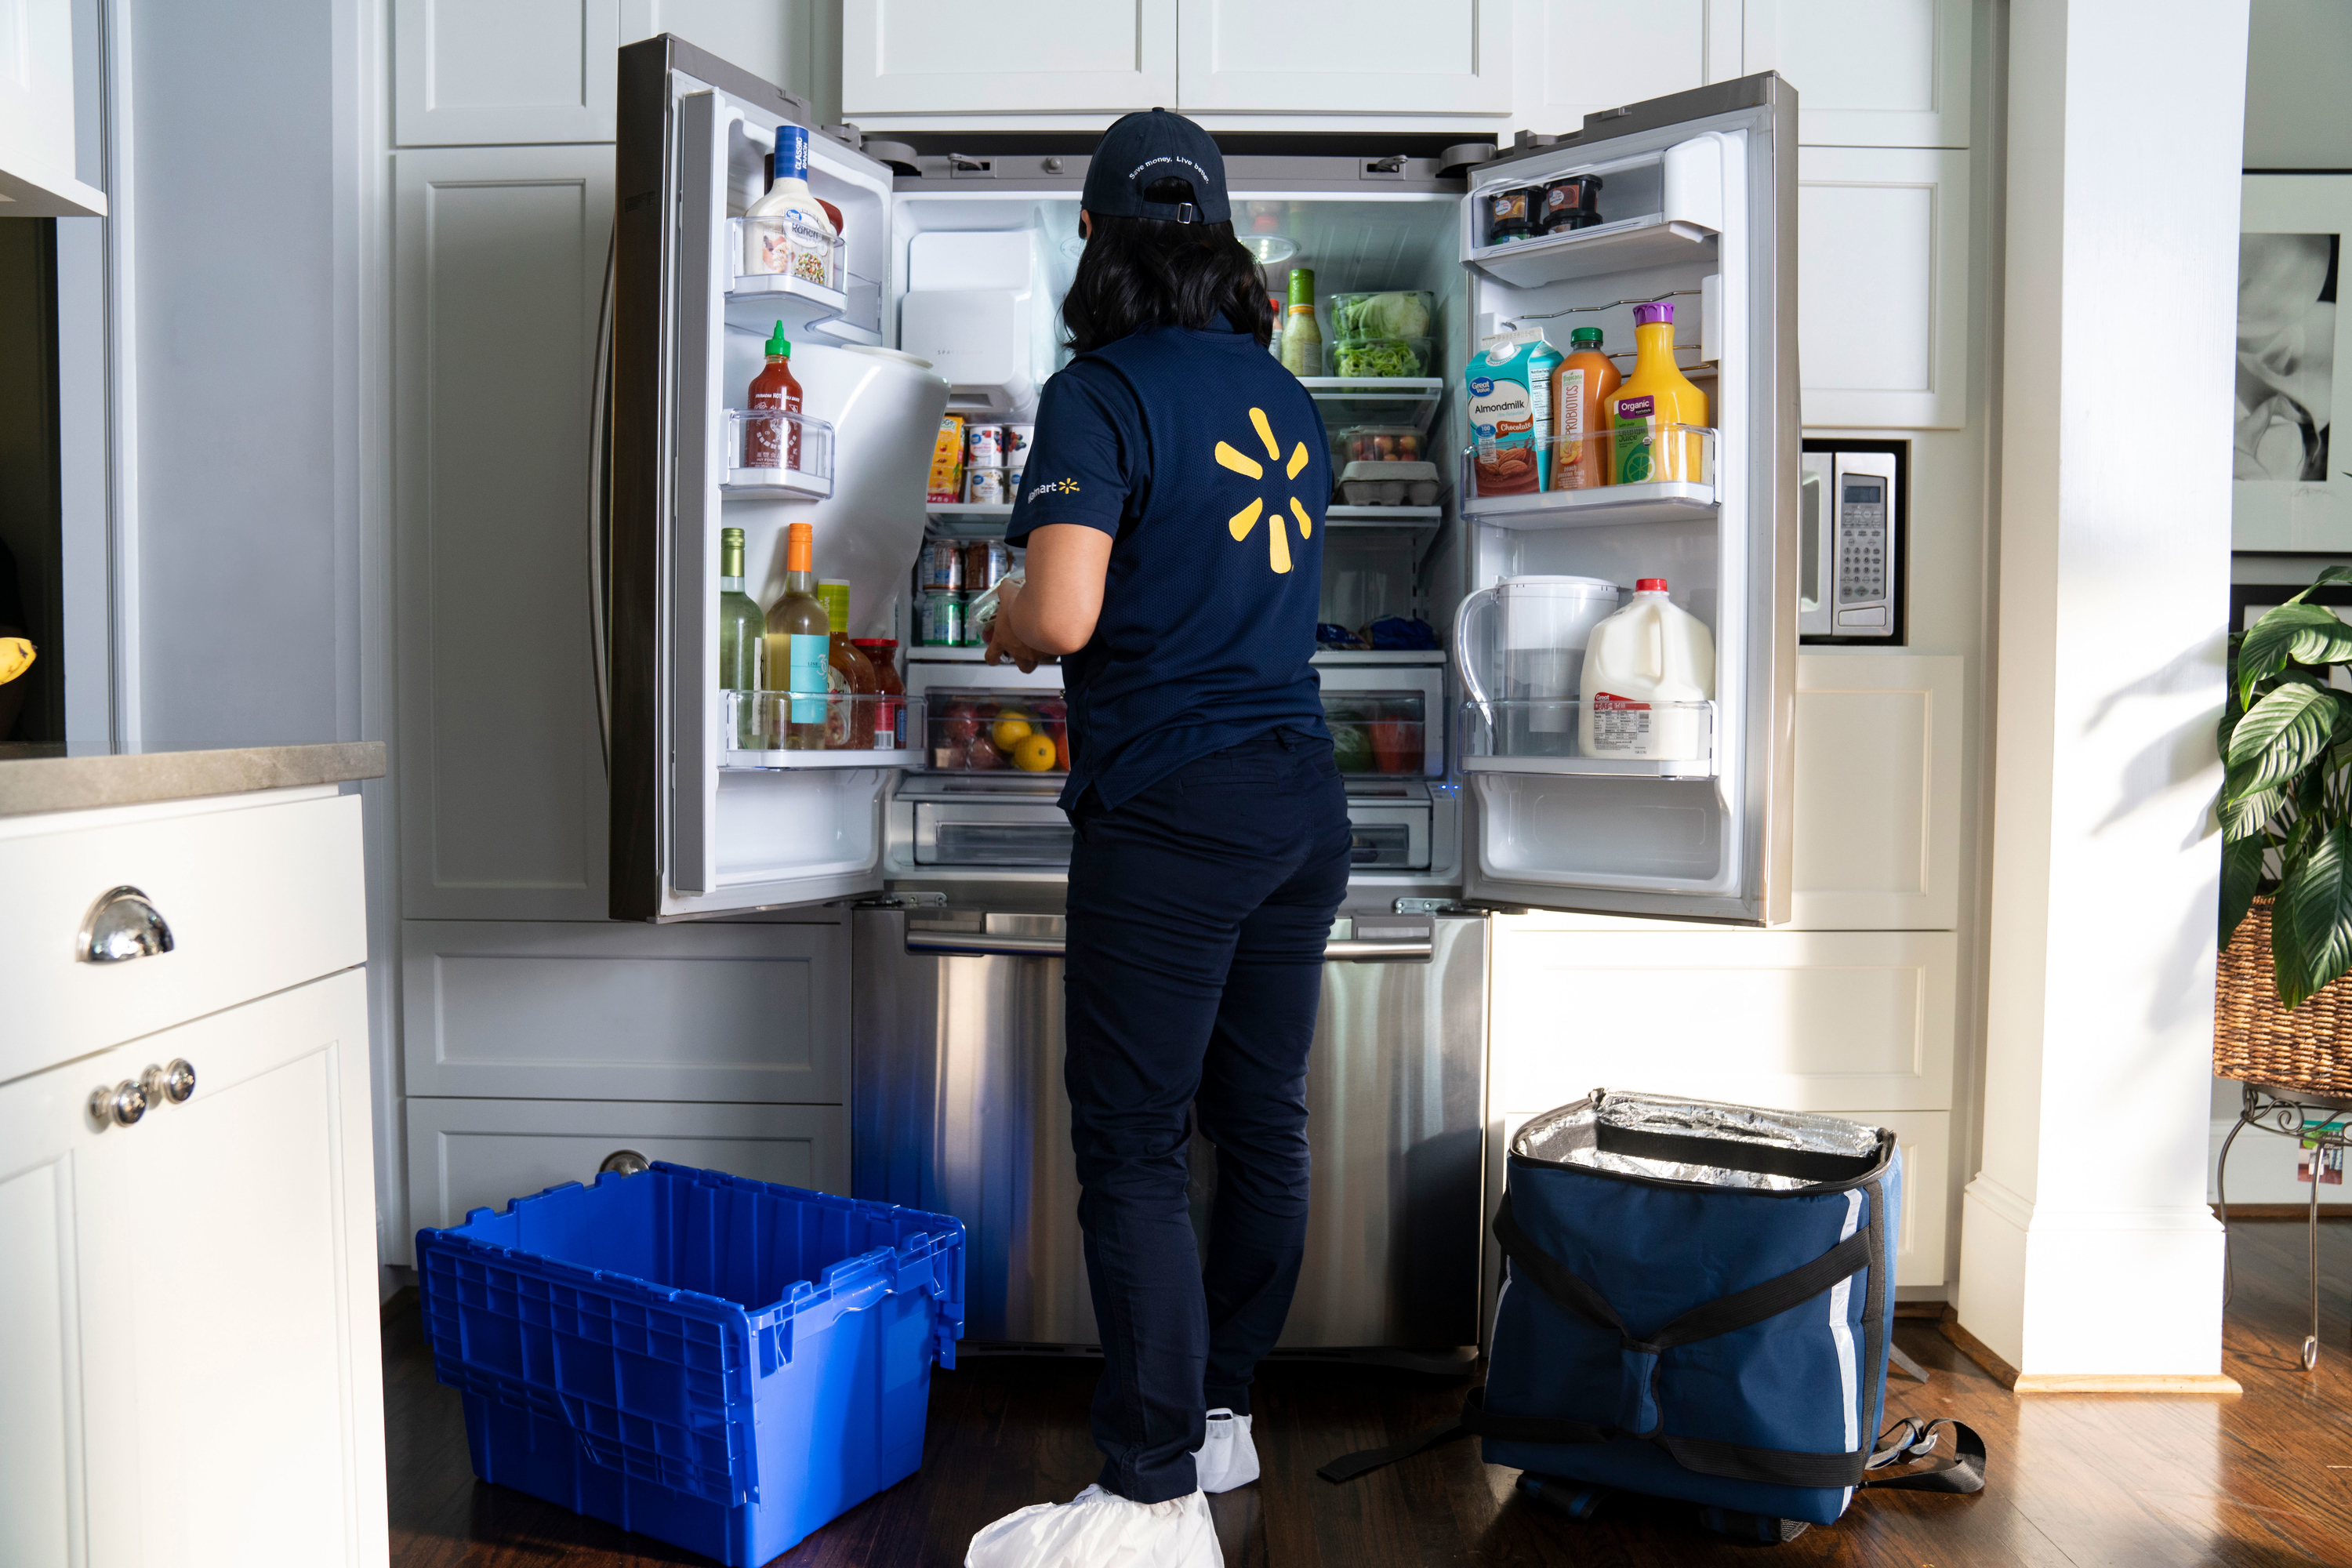 Walmart delivery service that places groceries in your fridge launches this fall